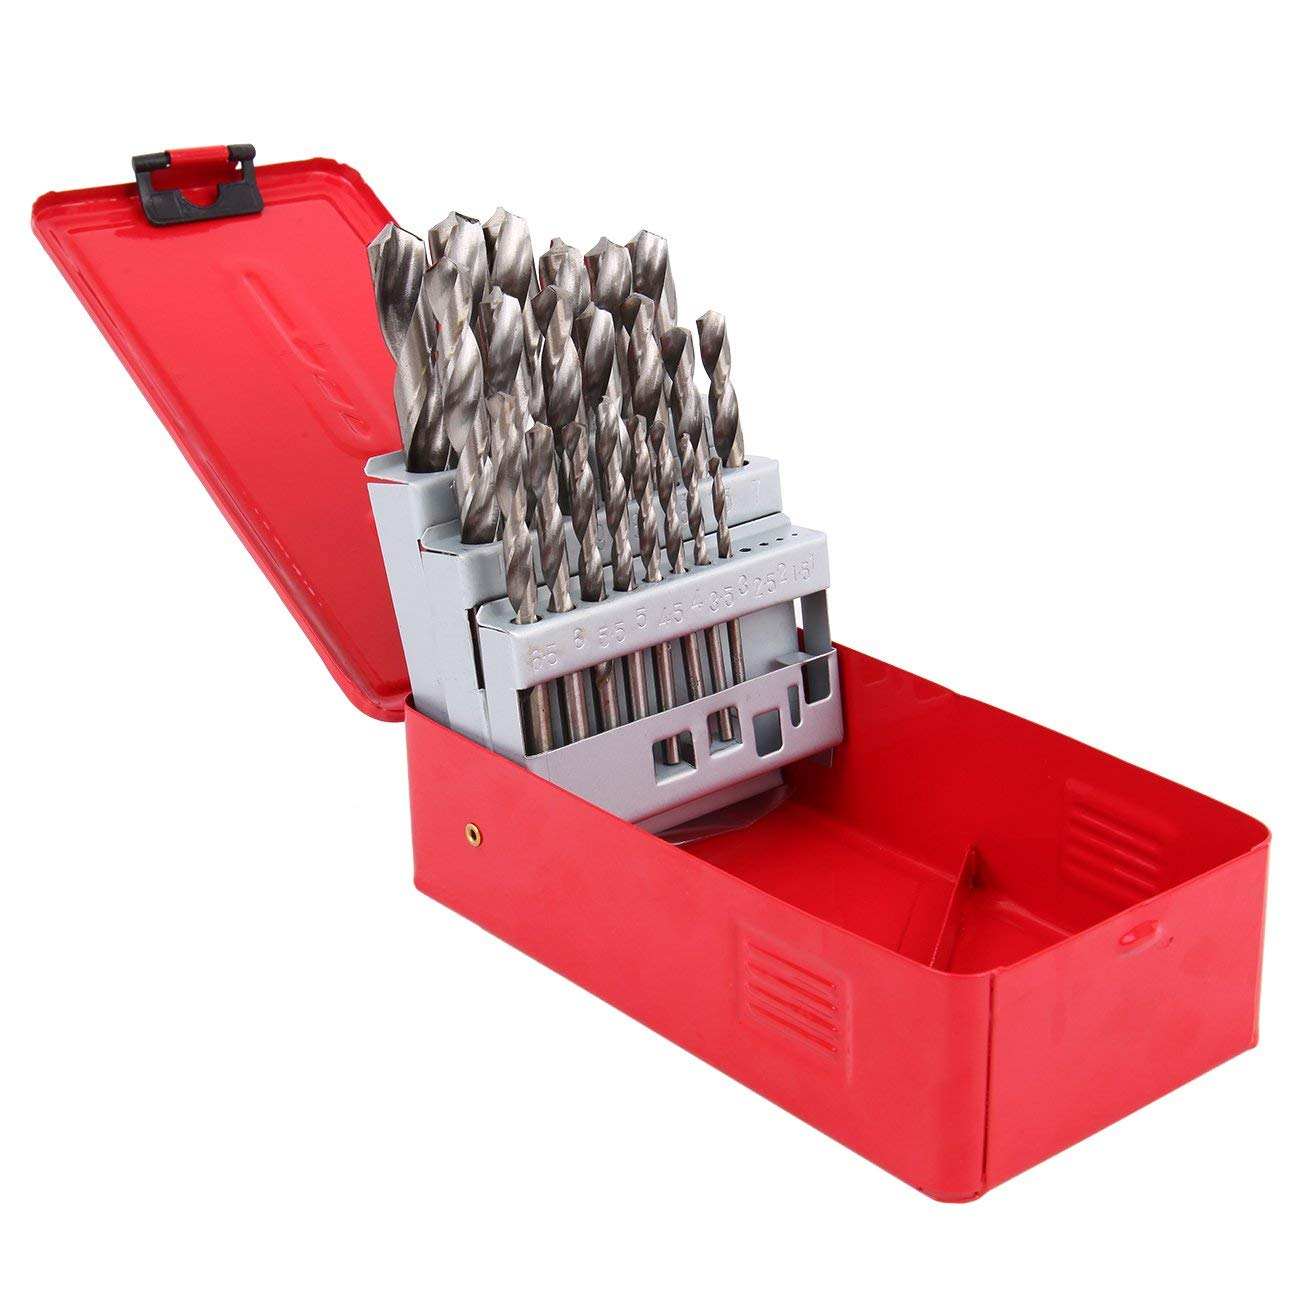 Muguang 25Pc High Speed Steel Twist Drill Bit Set 1mm-13mm 118 Degree Split Point Angle Metric HSS Drill Bit Tool Kit